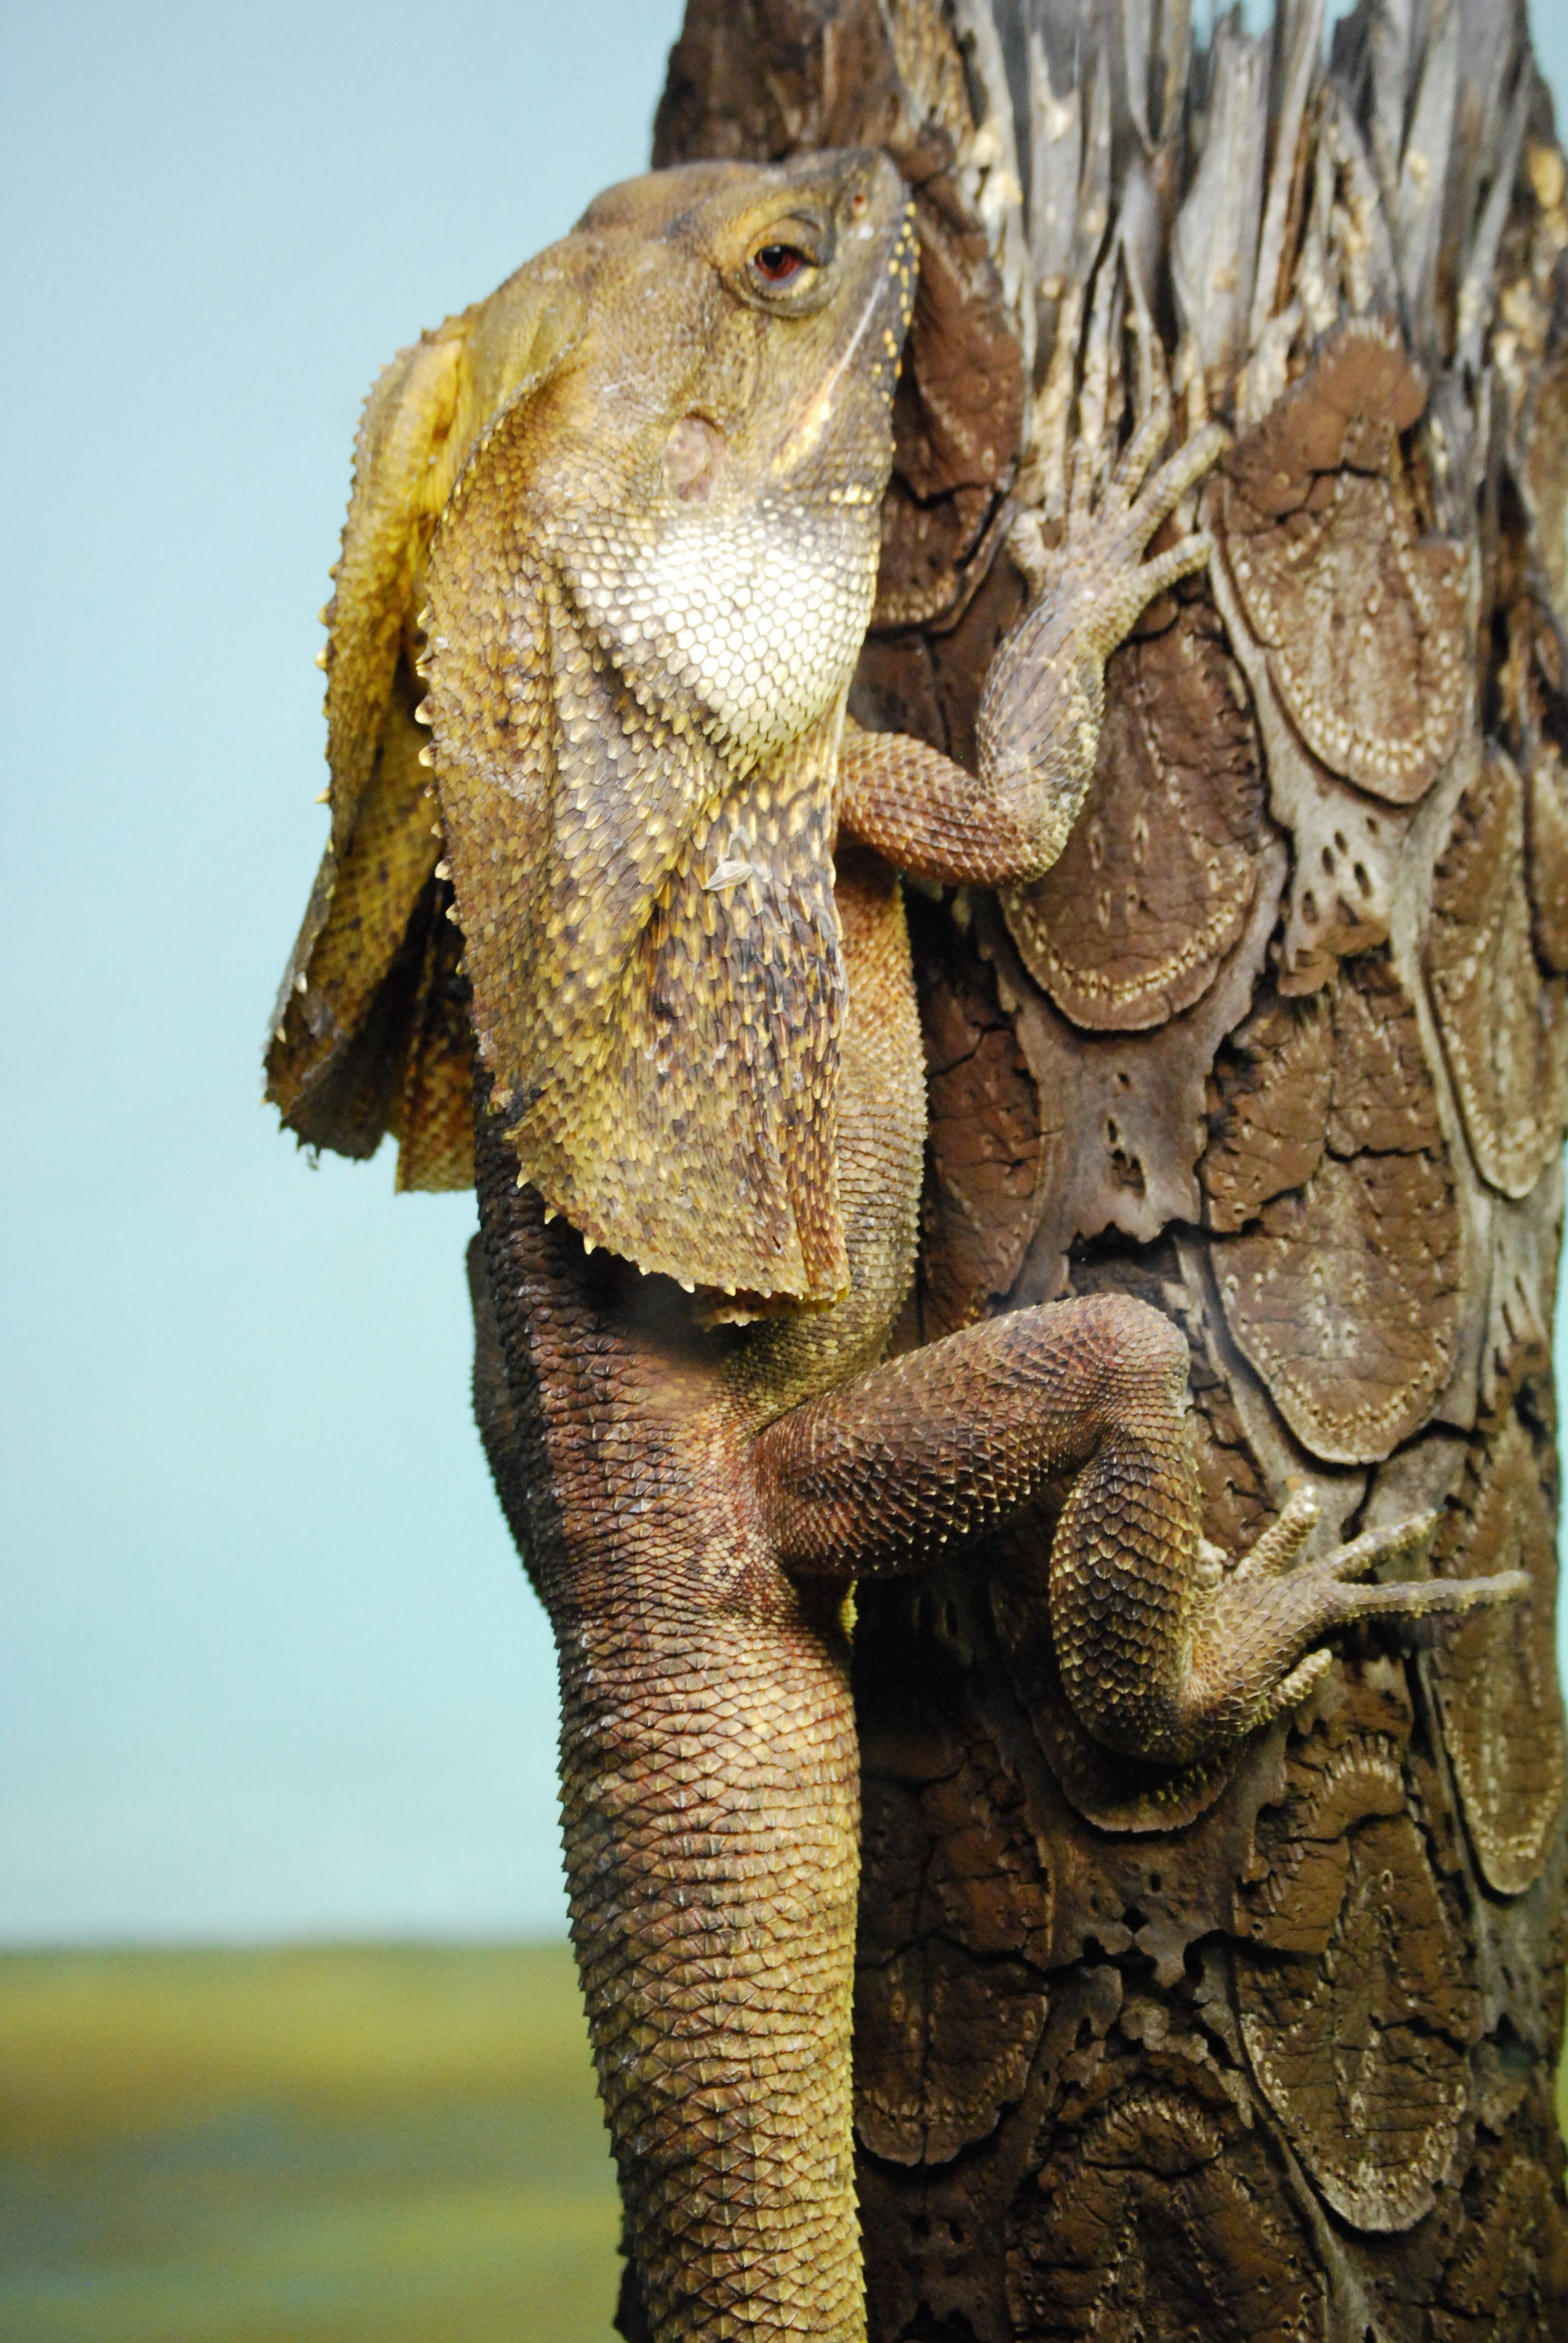 Image of frilled lizard